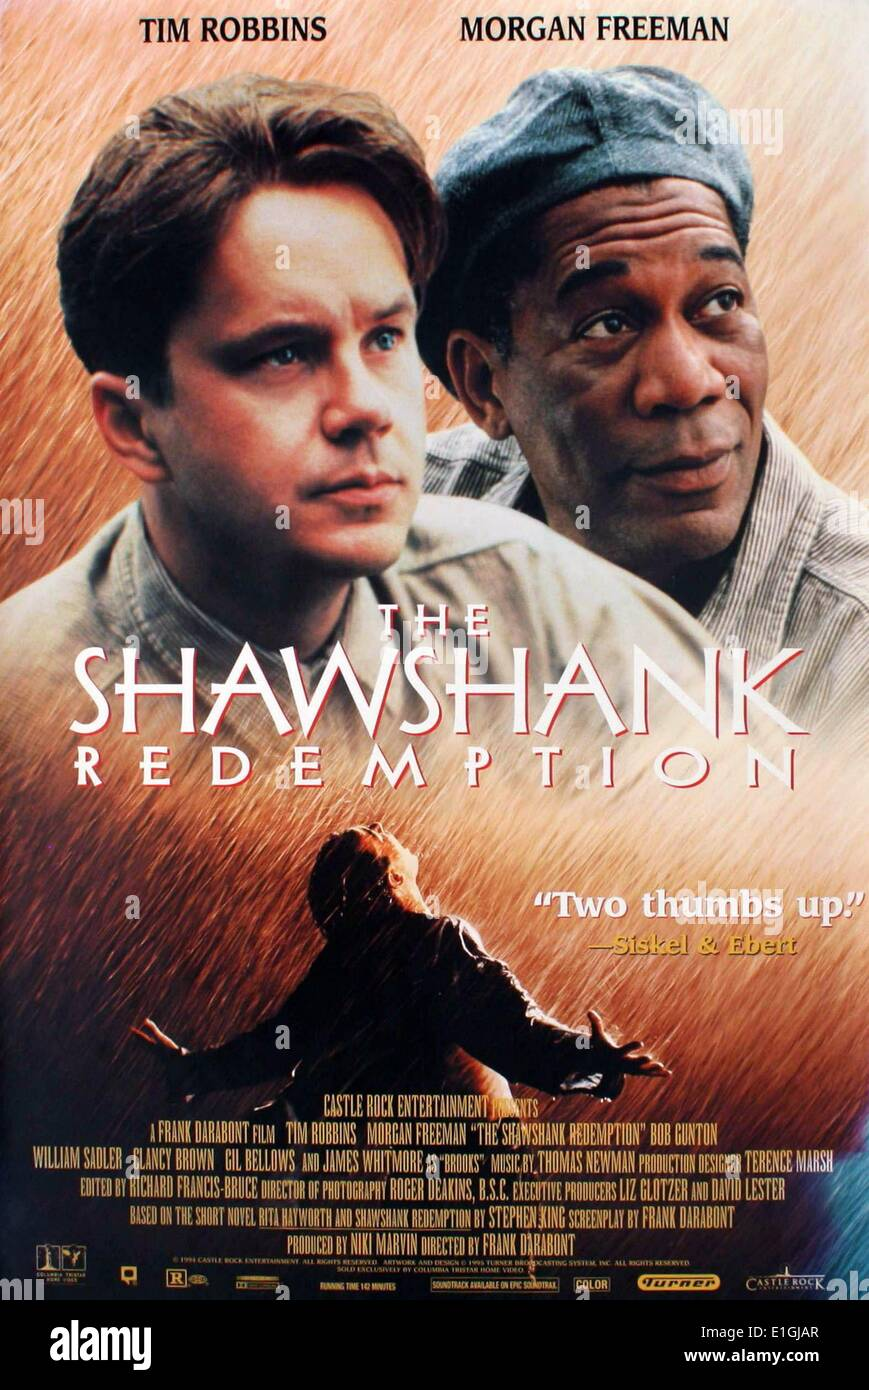 'The Shawshank Redemption' a 1994 American Drama film starring Tim Robbins and Morgan Freeman. - Stock Image